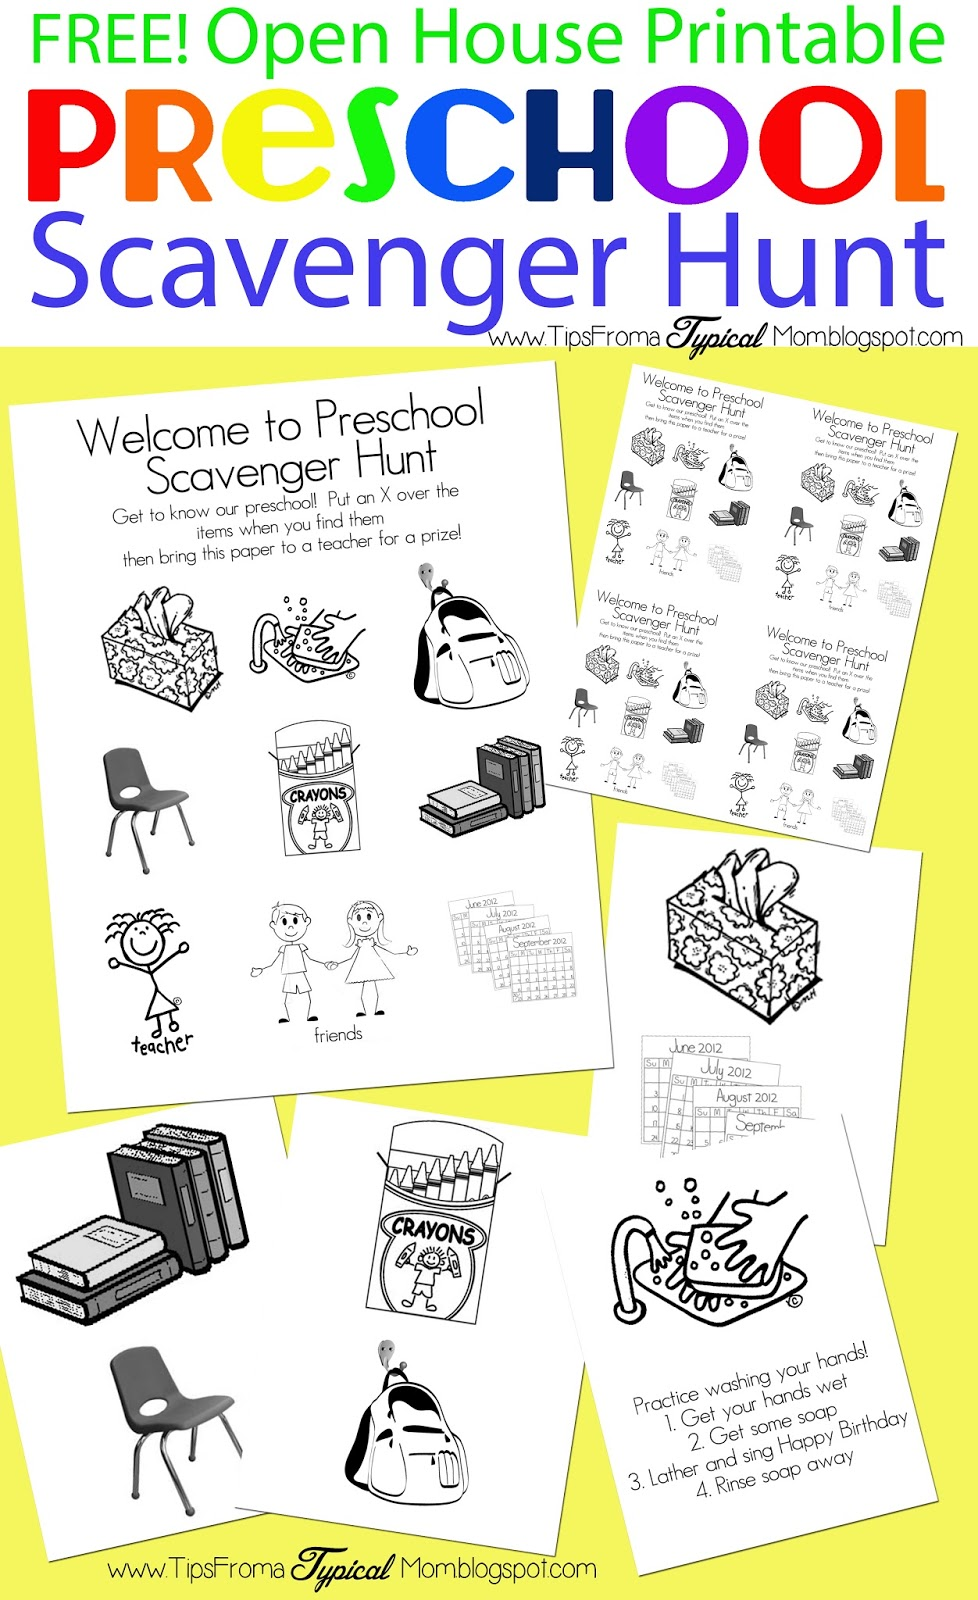 Camping Scavenger Hunt Printable - Paper Trail Design |Scavenger Hunt Printable Games Worksheets